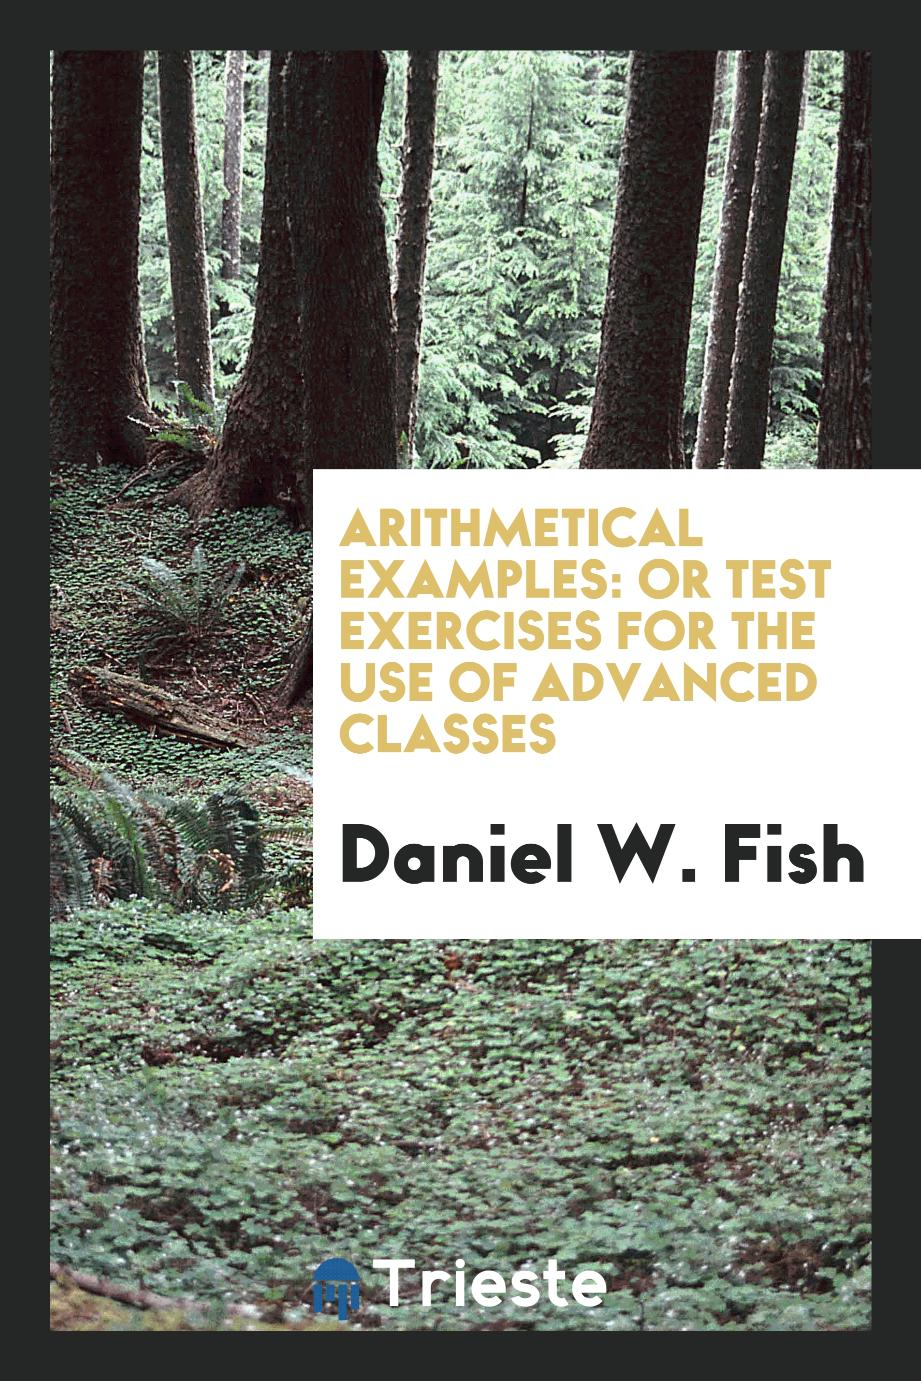 Arithmetical examples: or test exercises for the use of advanced classes